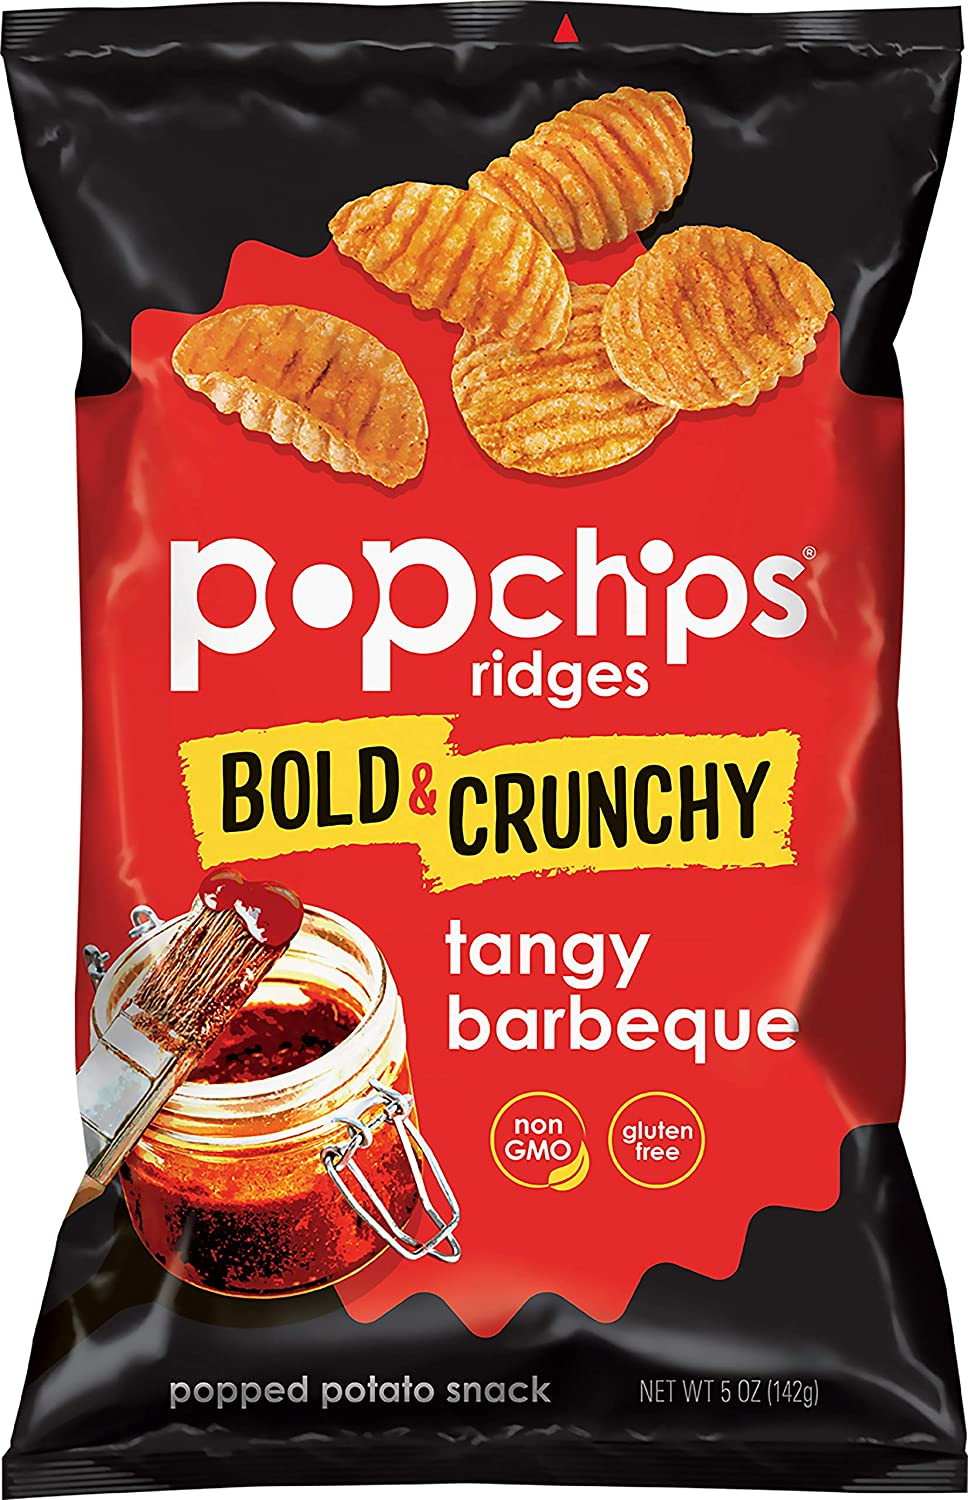 popchips Ridges Tangy Barbeque Potato Chips of 5 Bags New popularity shipfree Pack 1 oz